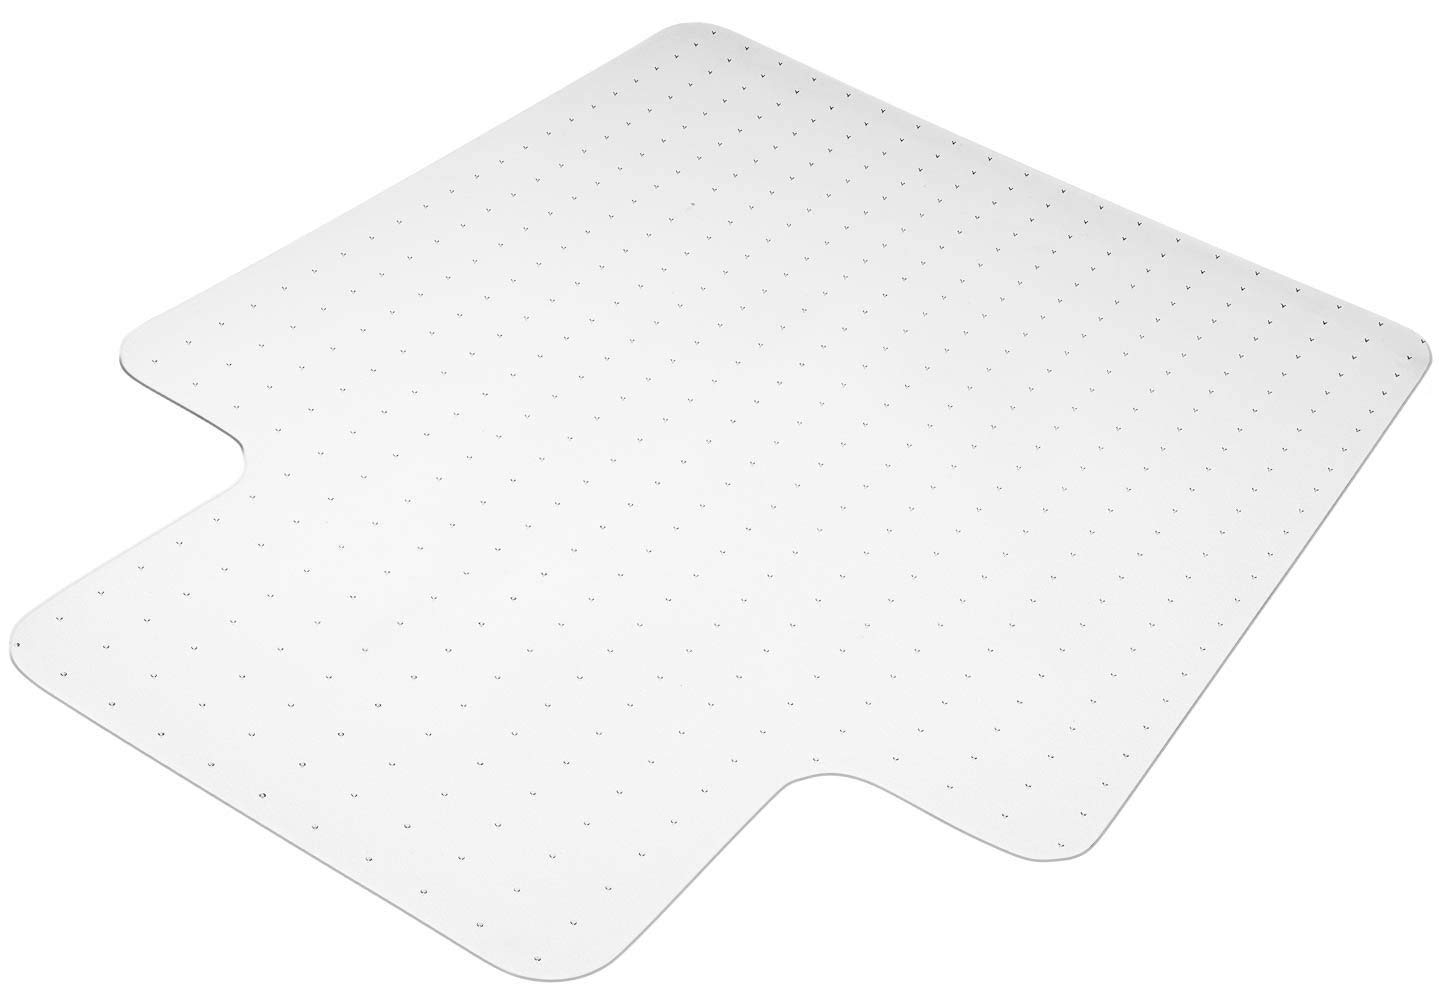 Office Chair Mats 36'' x 48'' Under Desk Chair Mat Transparent, Vinyl Floor Protector for Low,Standard Pile Carpets Protector,Non-Slip, Heavy-Duty | Home, Office